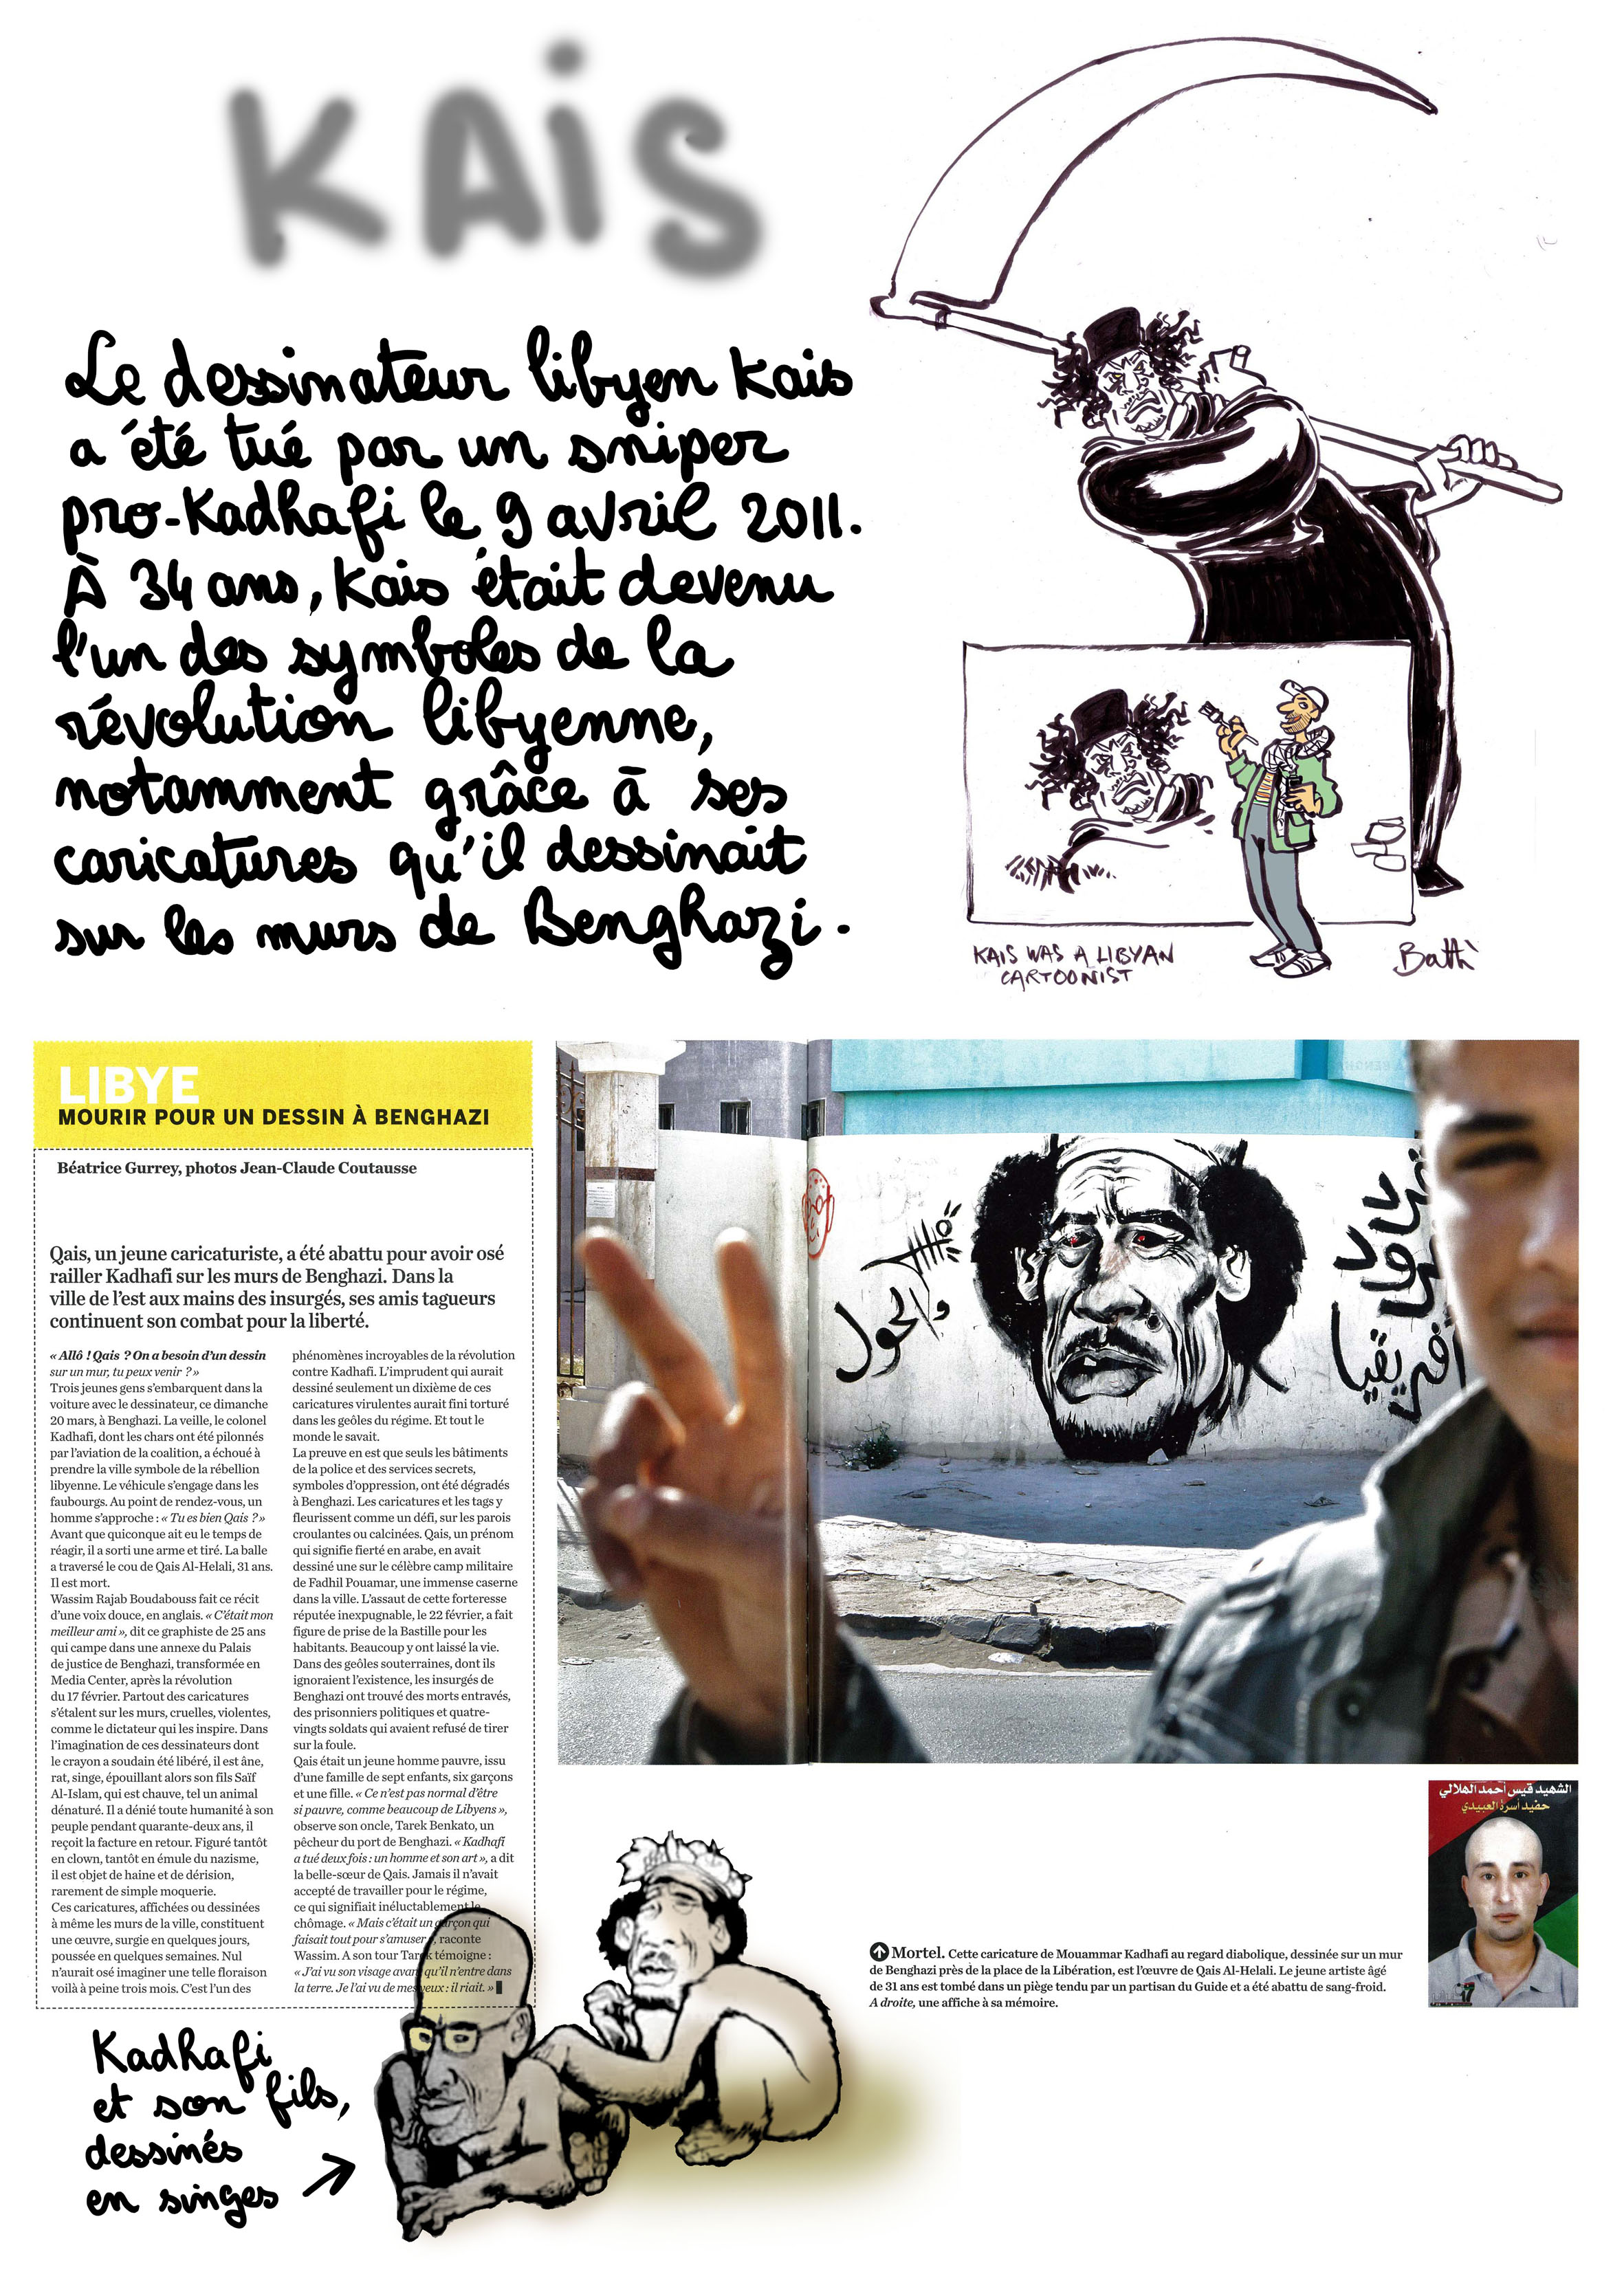 Support of Plantu and Cartooning For Peace to the libyan cartoonist Kais